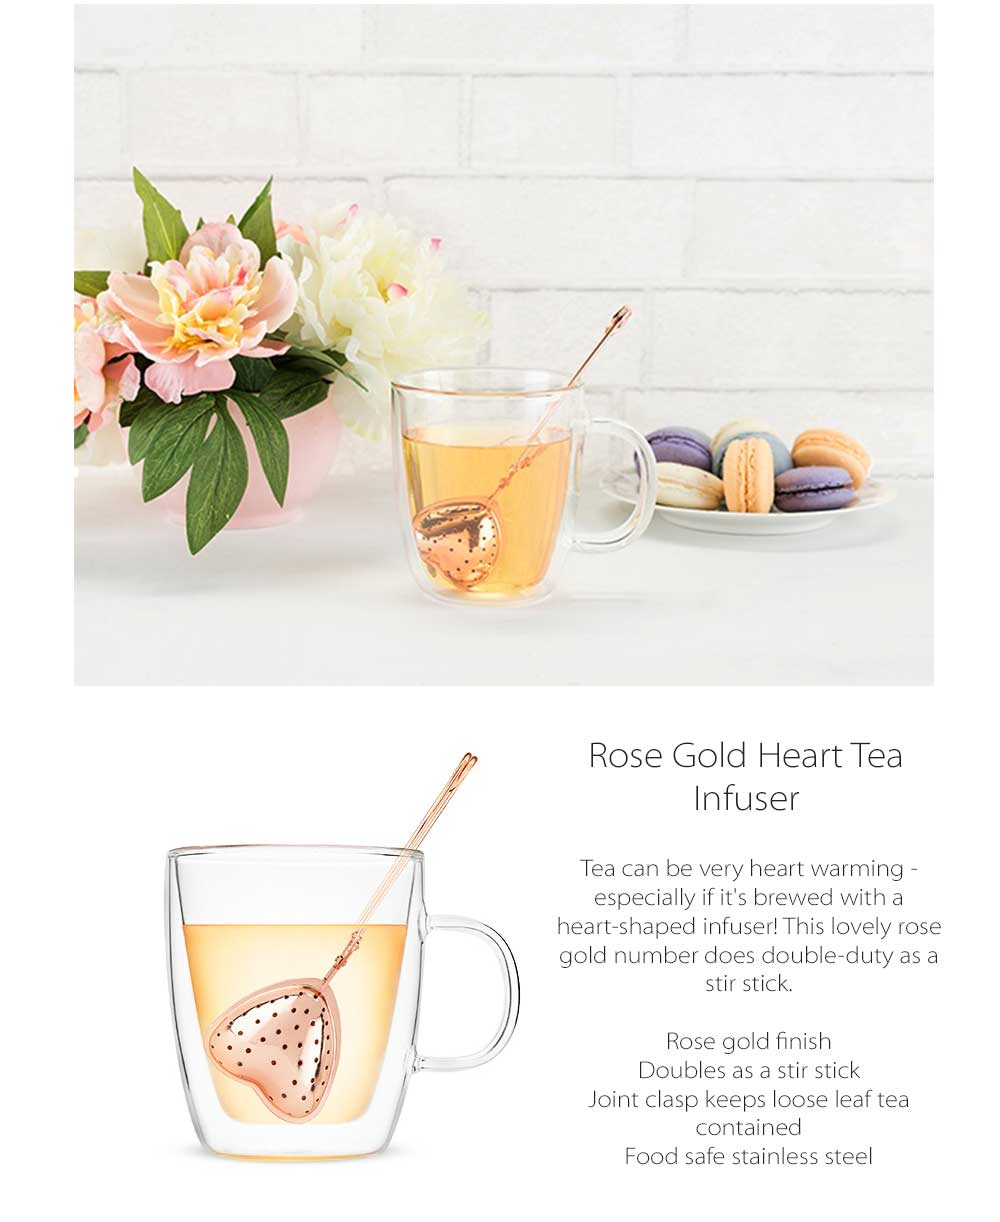 Rose Gold Tea Infuser Doubles As A Stir Stick